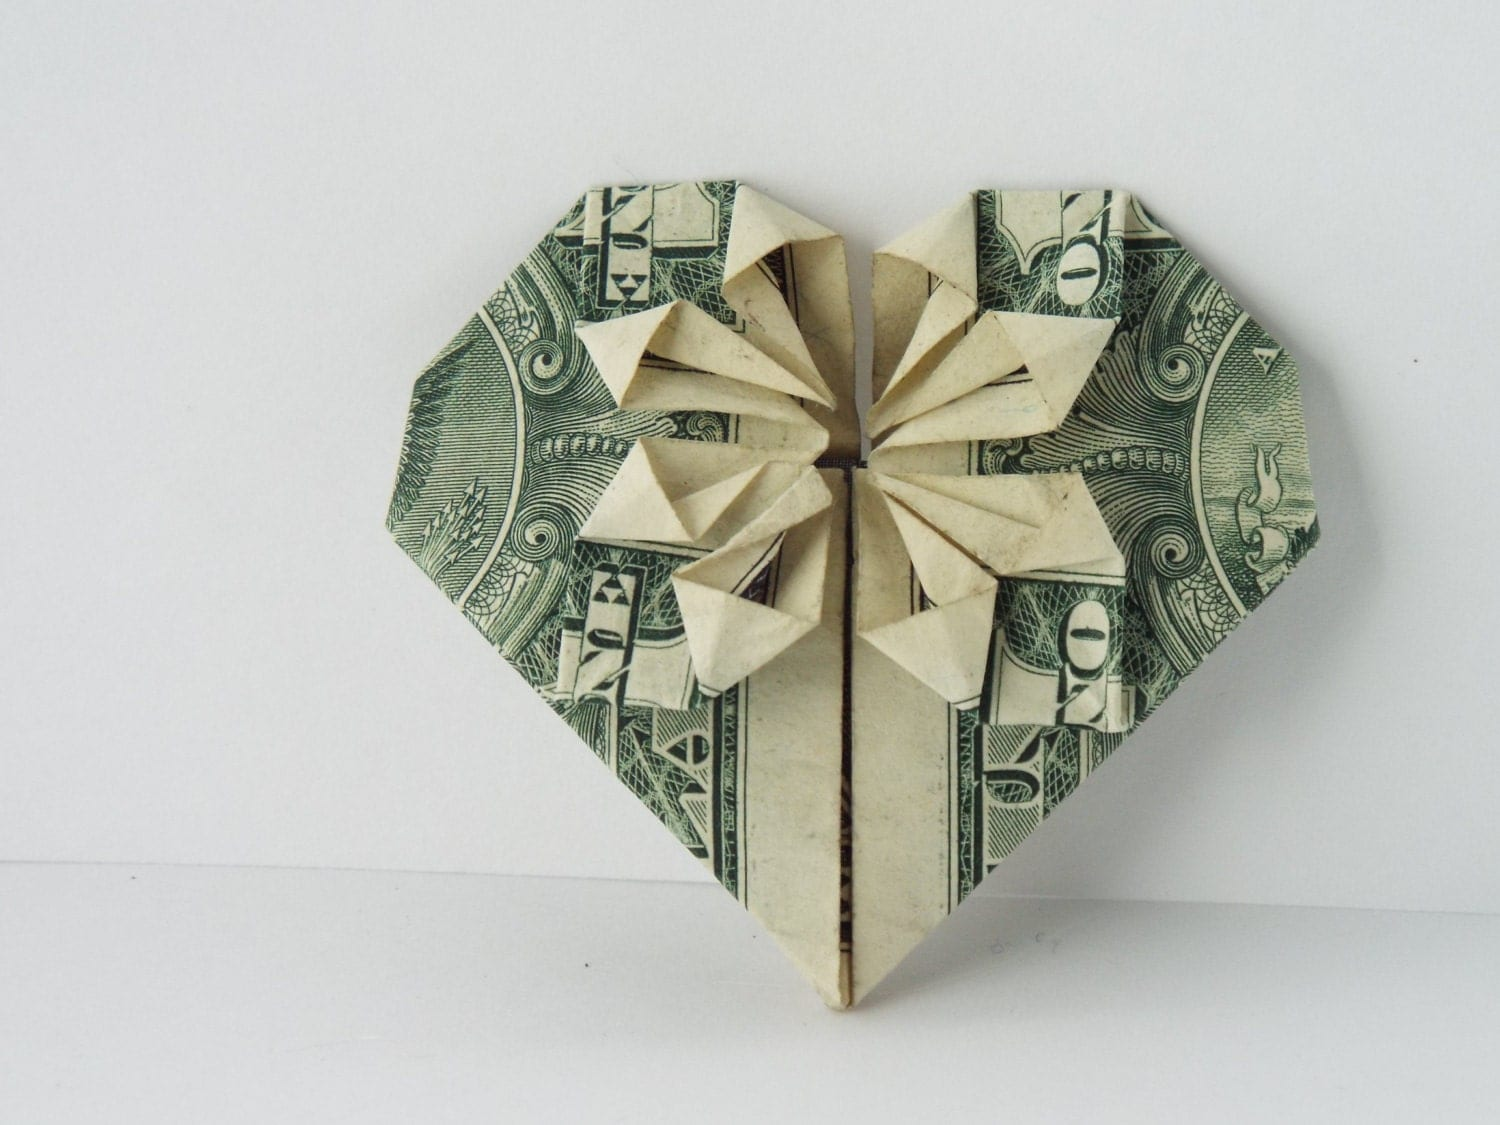 Dollar Bill Origami Heart with Star in the Middle - photo#37